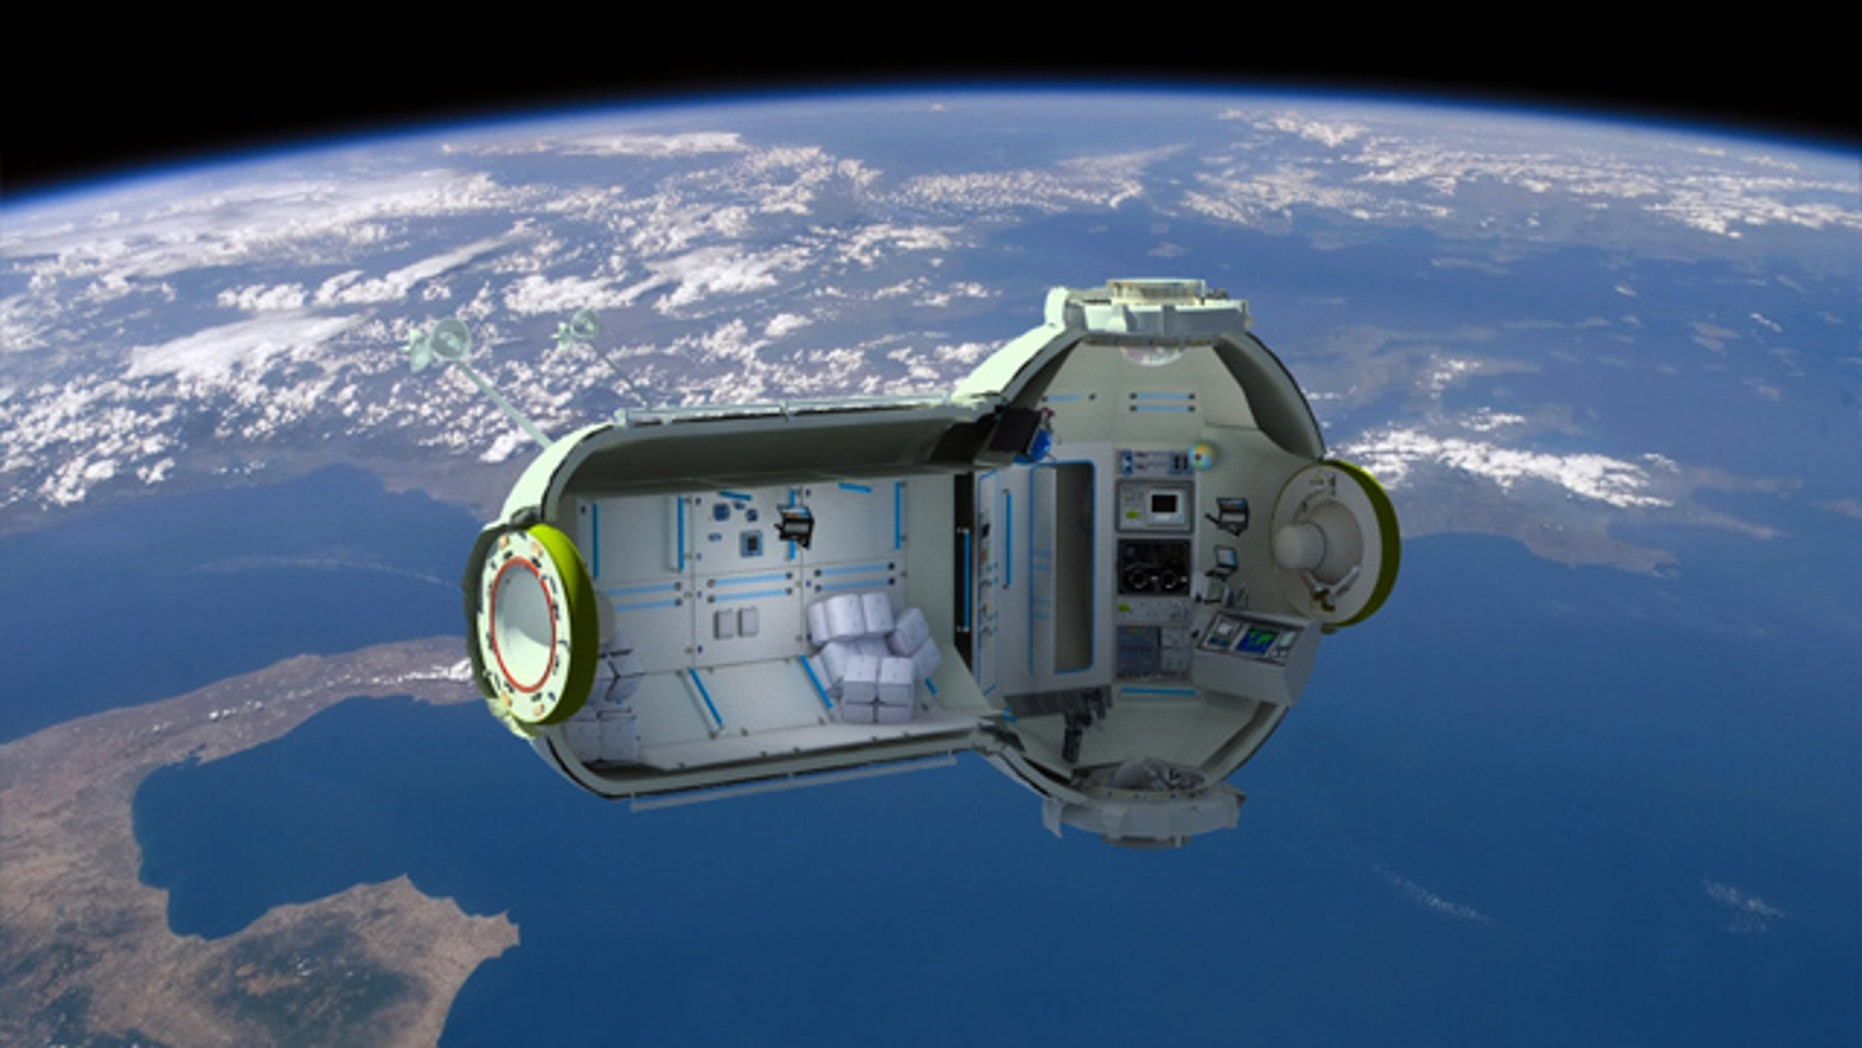 A Russian company has revealed plans for a space hotel that will cost nearly $1 million to visit.